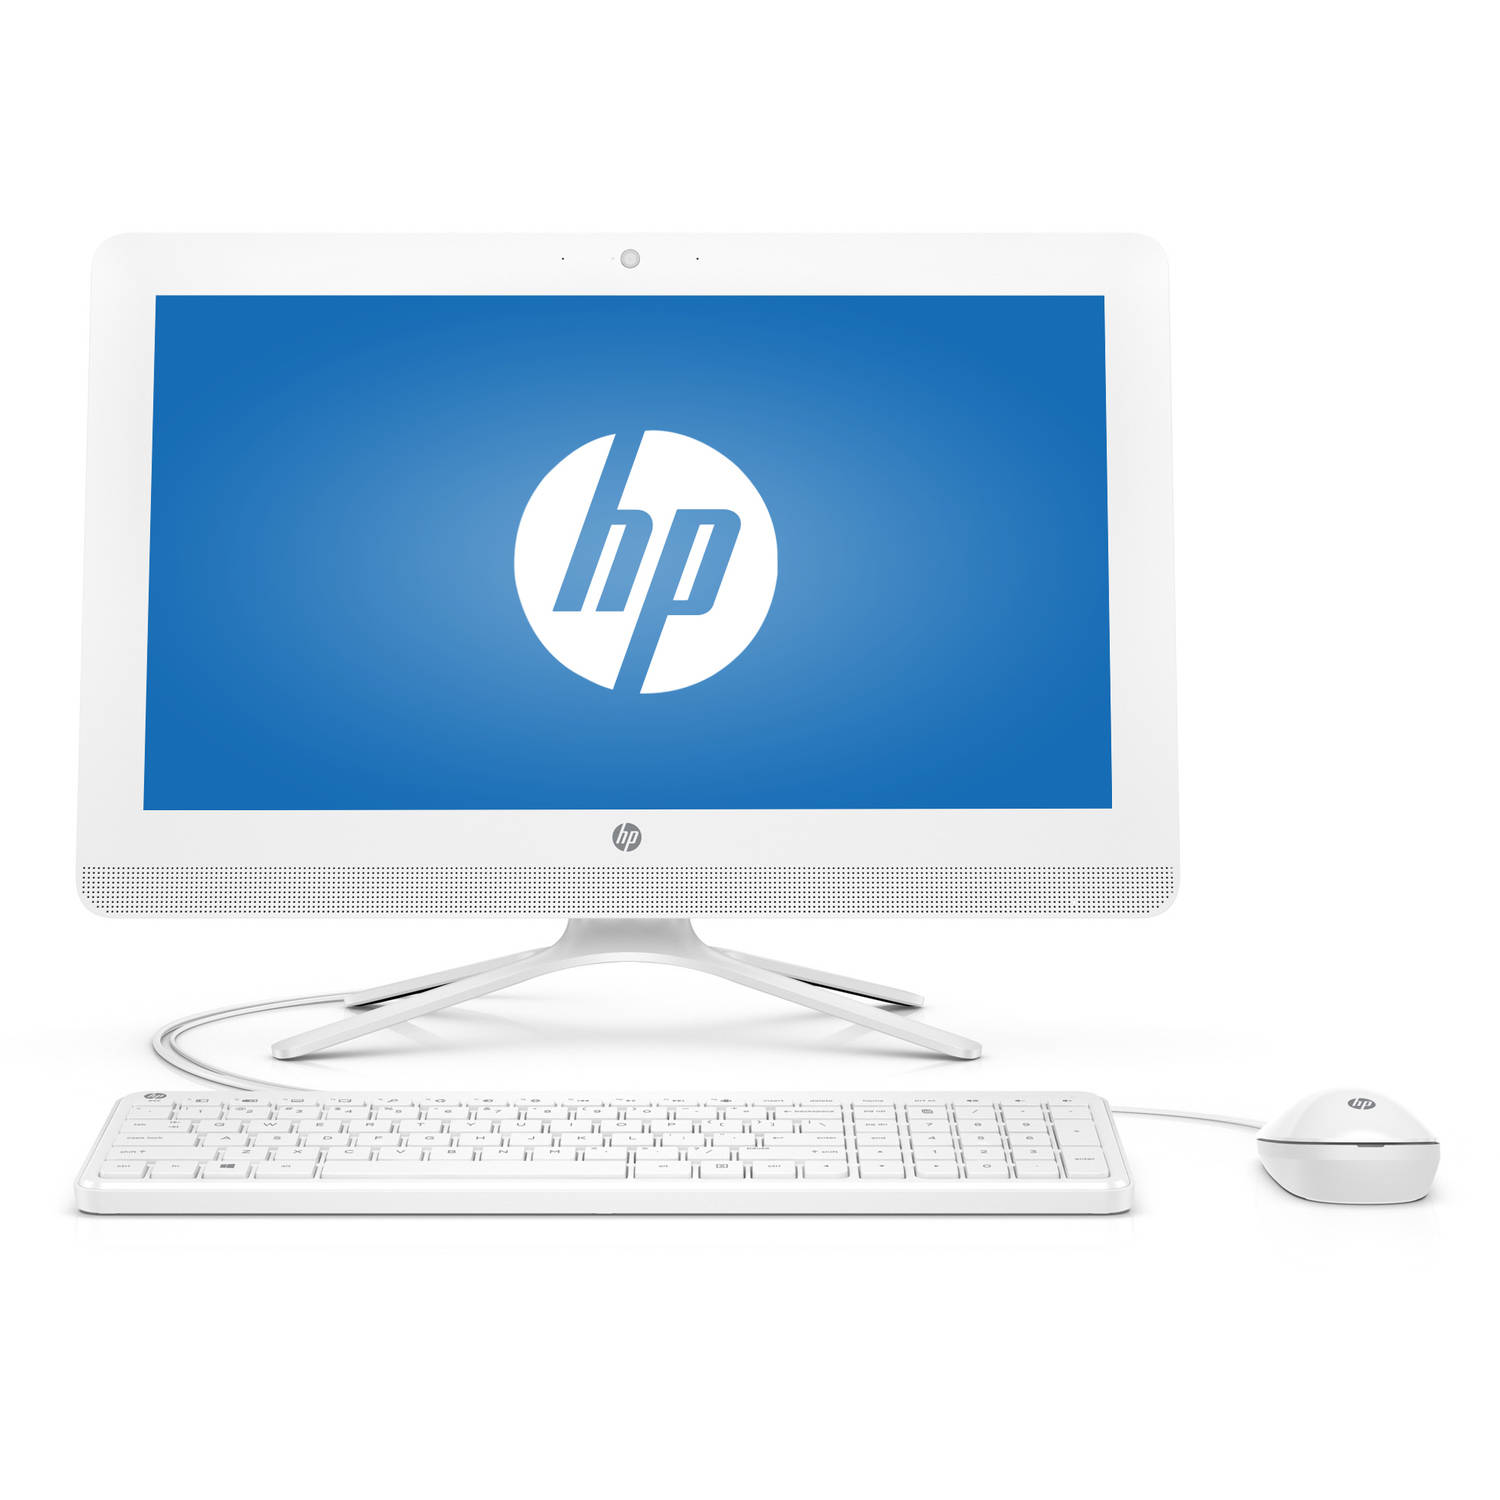 HP 24-g016 All-in-One Desktop PC with Intel Pentium J3710...